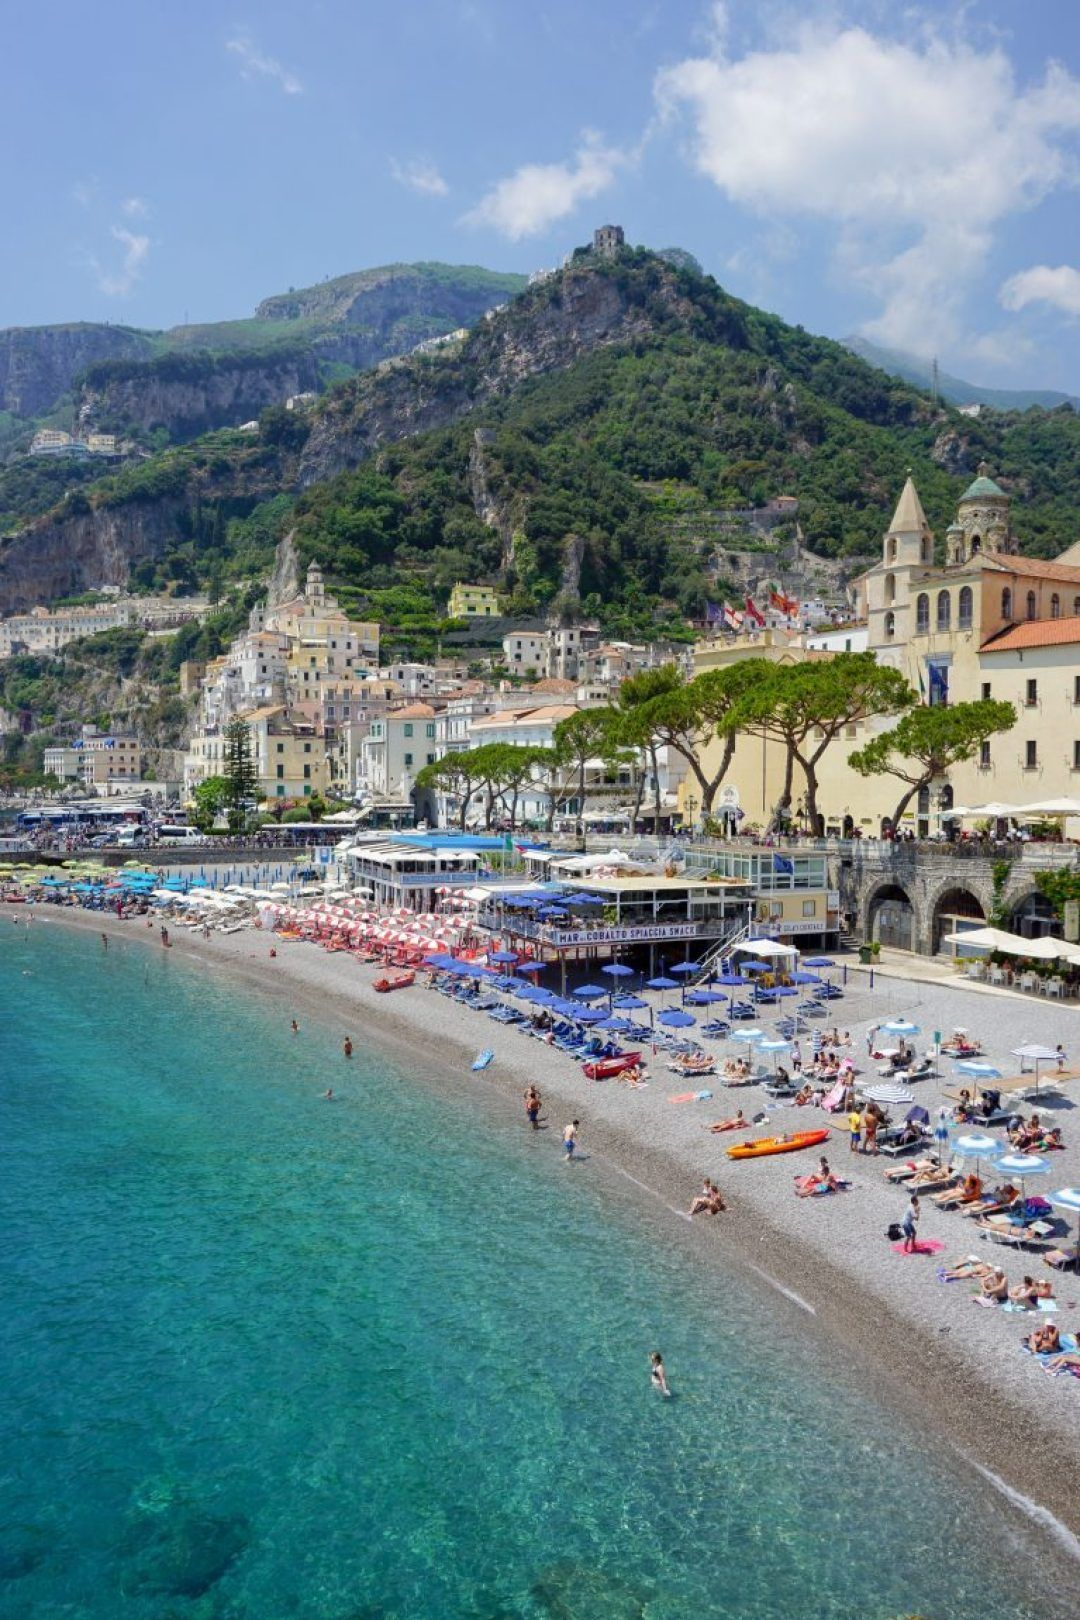 Amalfi Coast Towns The Best Day Trips From Positano This Darling World Amalfi Coast Towns Italy Travel Photography Amalfi Coast